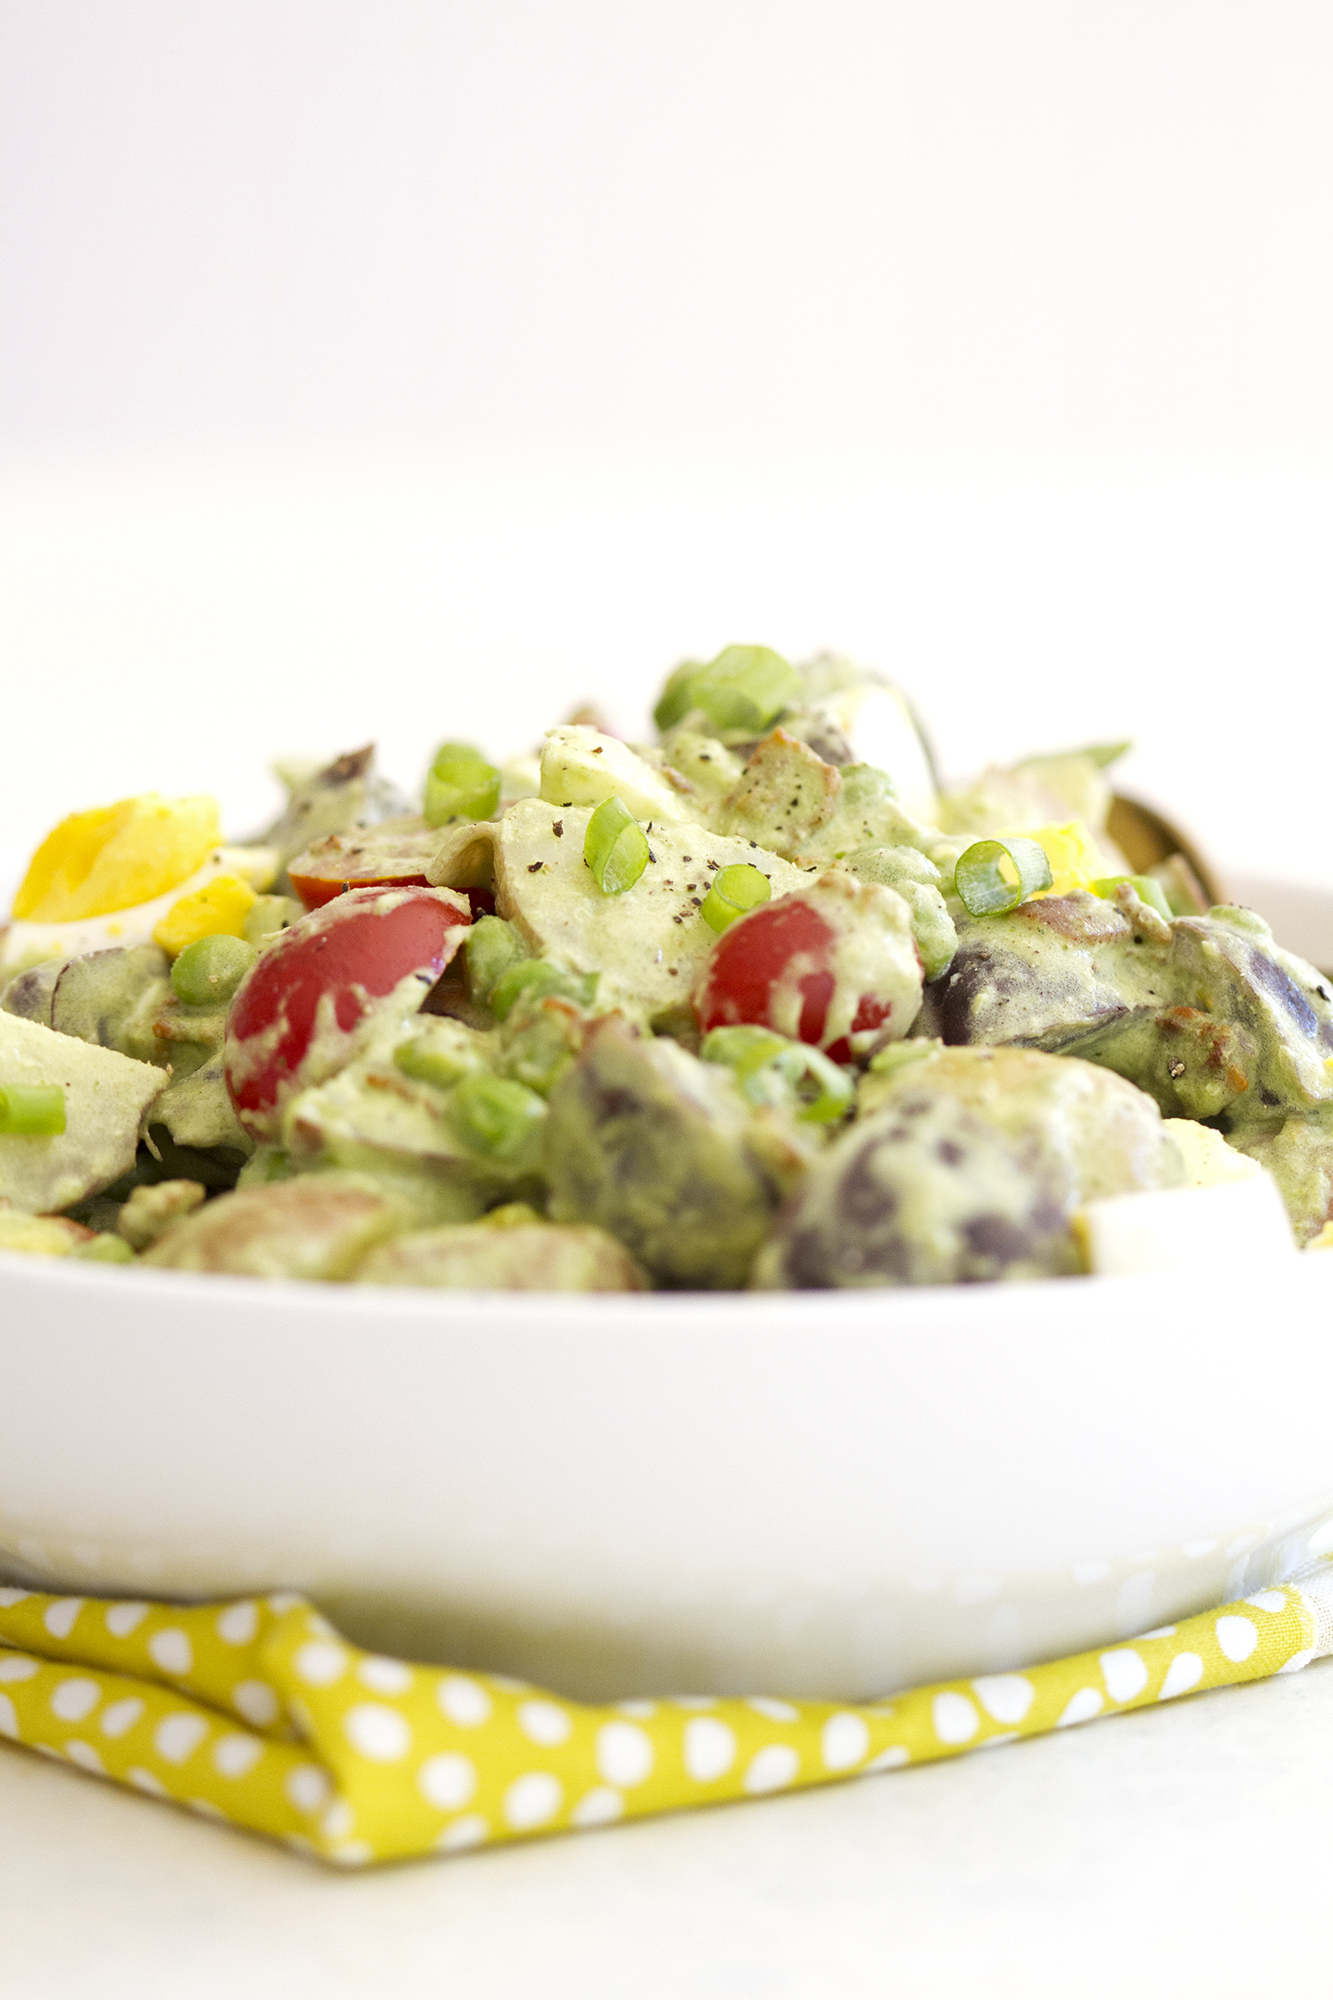 Green Goddess Potato Salad with Bacon and Peas | girlversusdough.com @girlversusdough